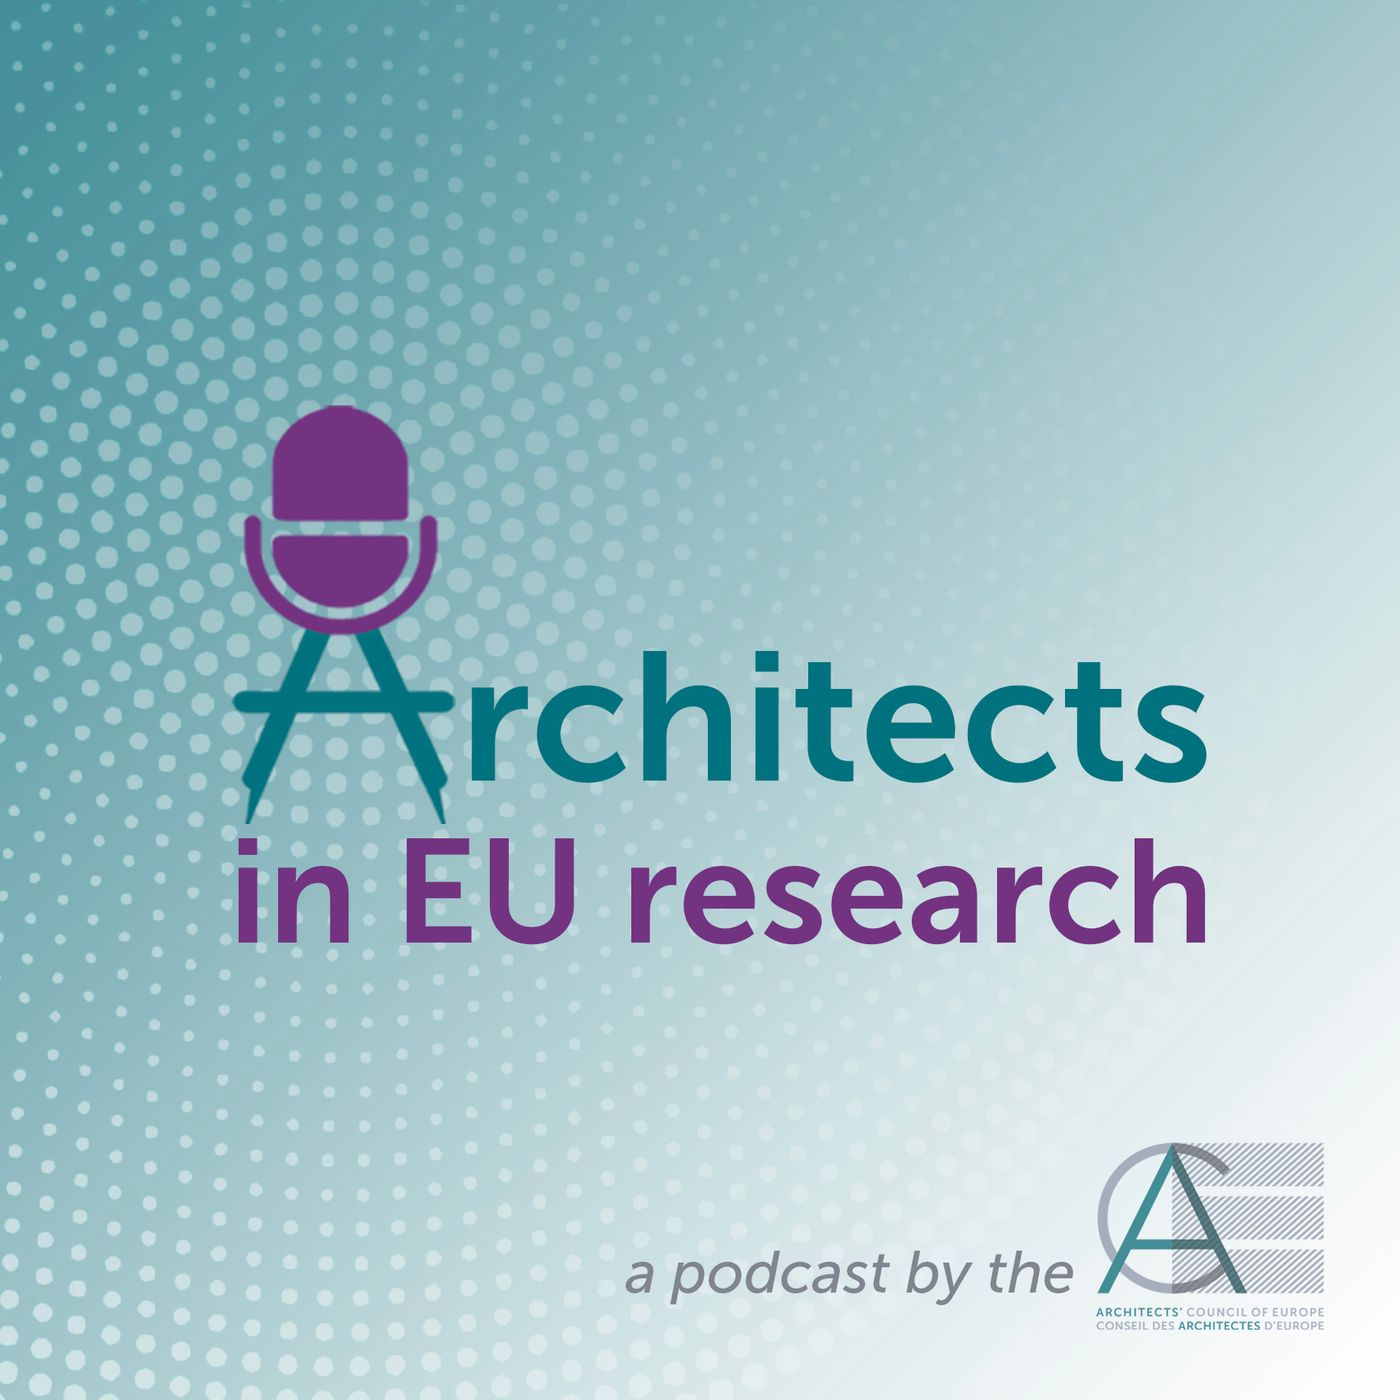 Teaser Trailer - Why a podcast about EU architects?